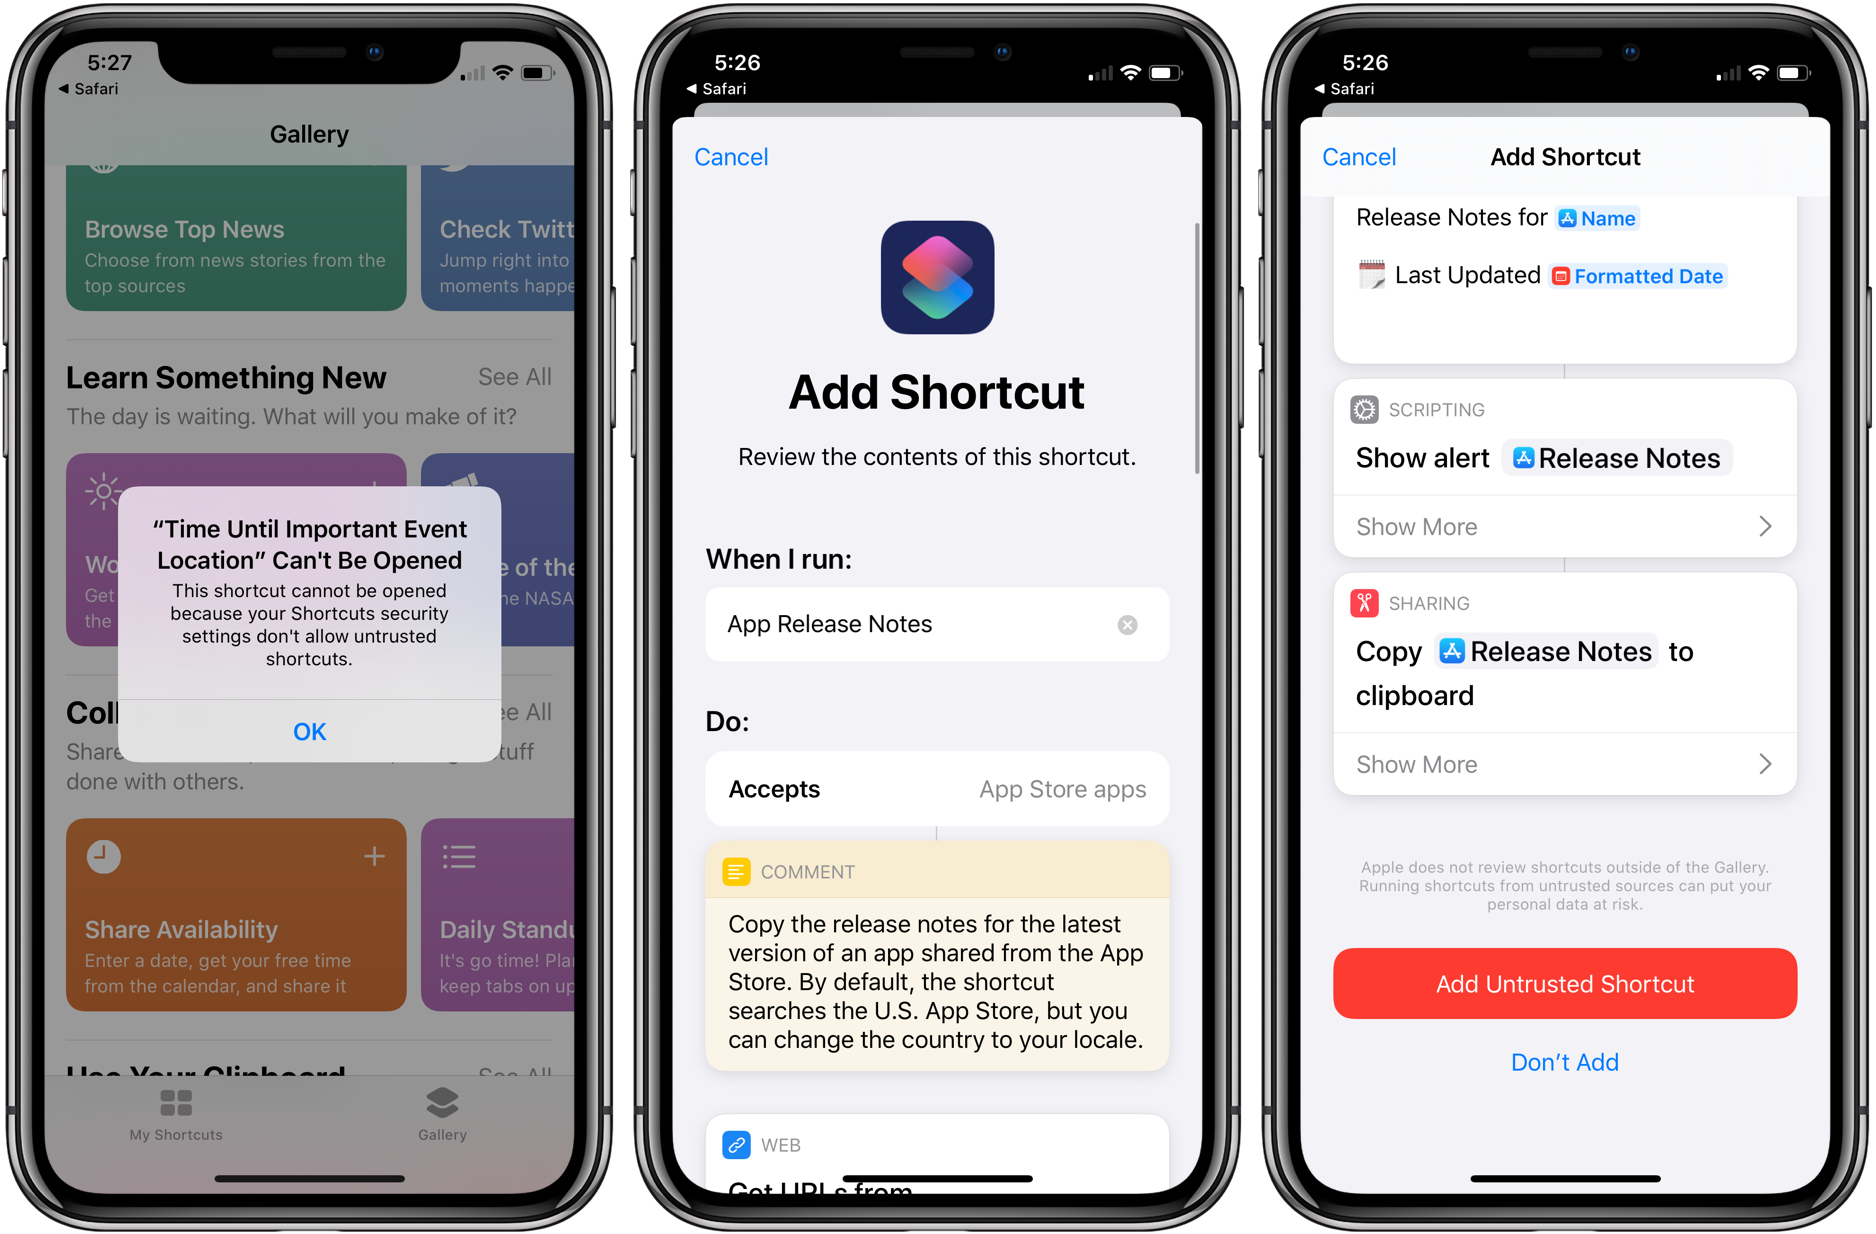 iOS 13: How to allow 'Untrusted Shortcuts' in your library